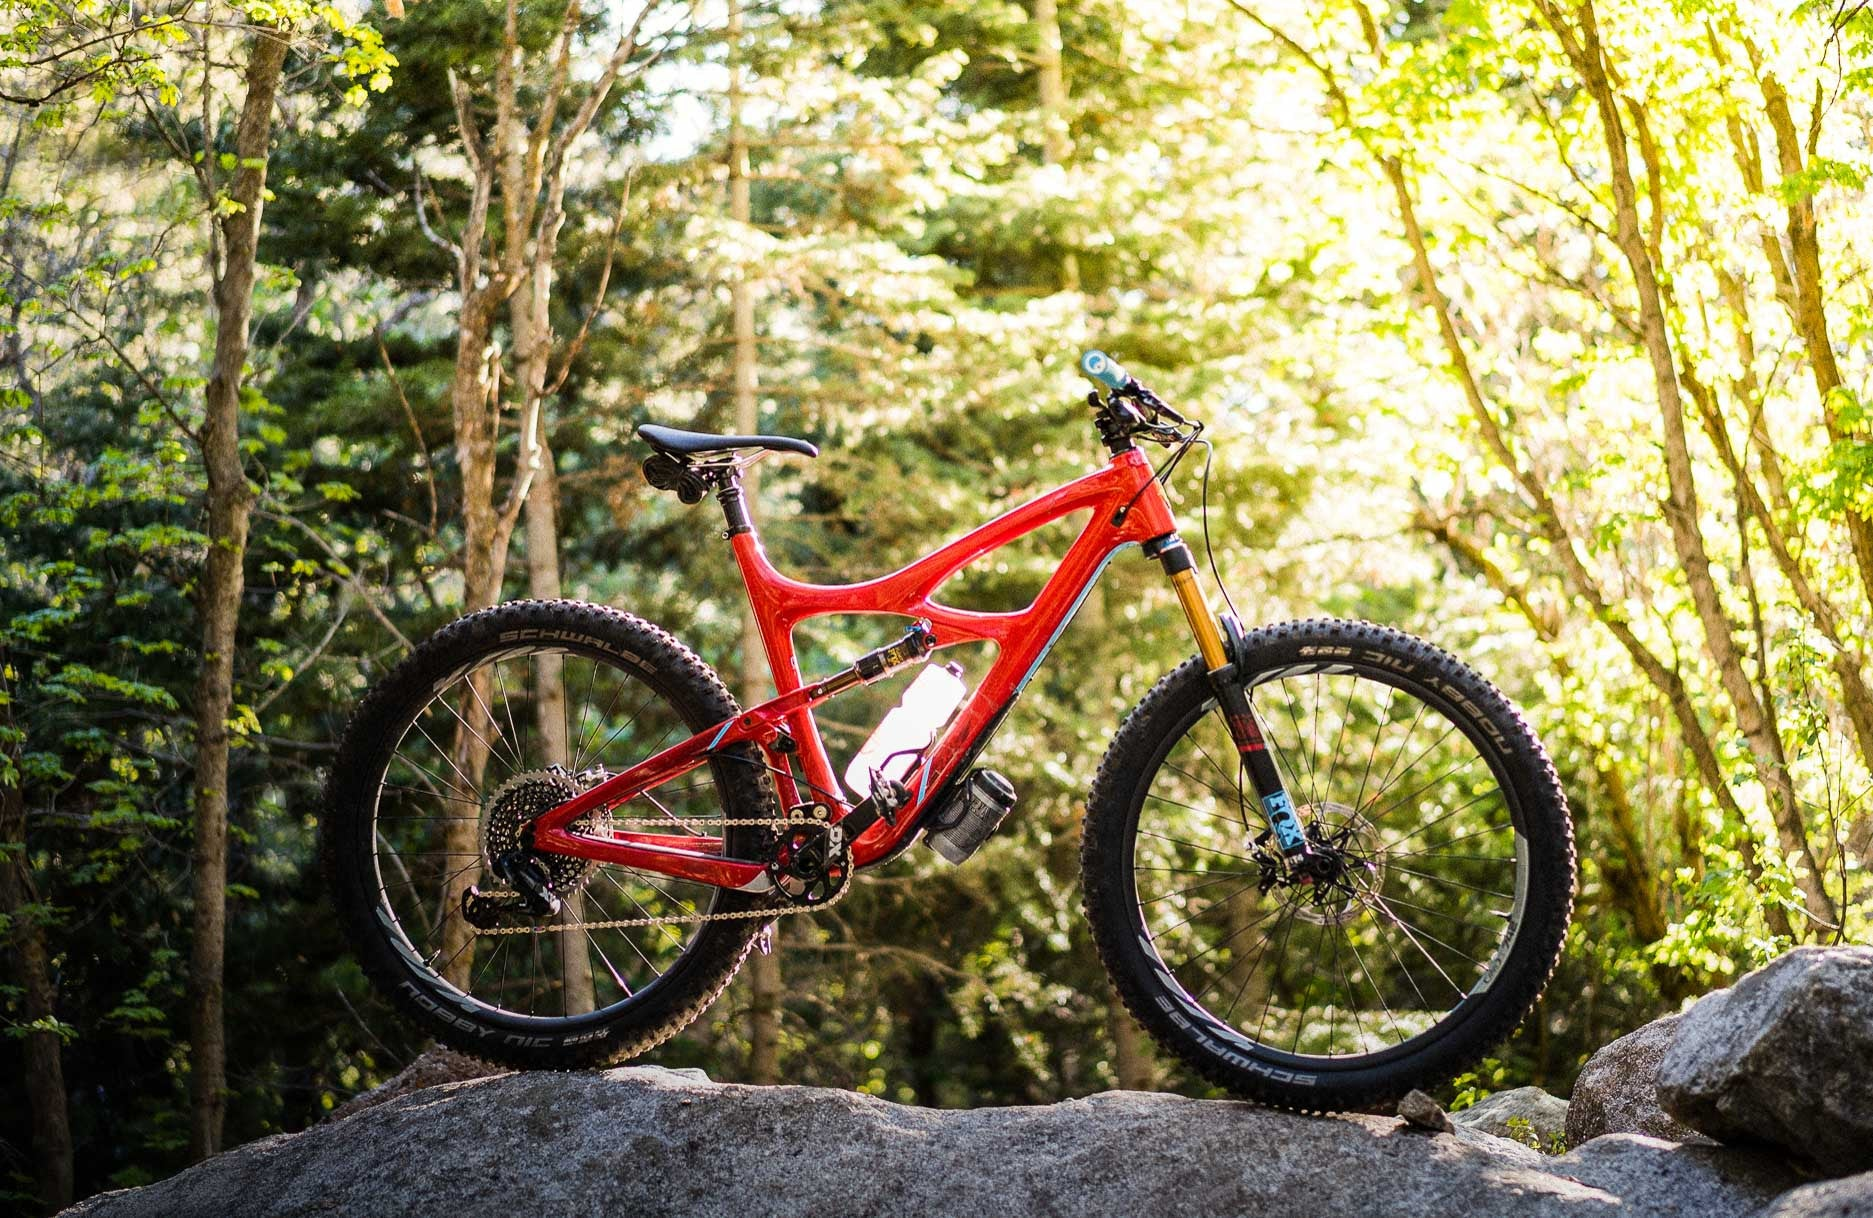 Biking is about having fun, and the Mojo 3 delivers in spades.